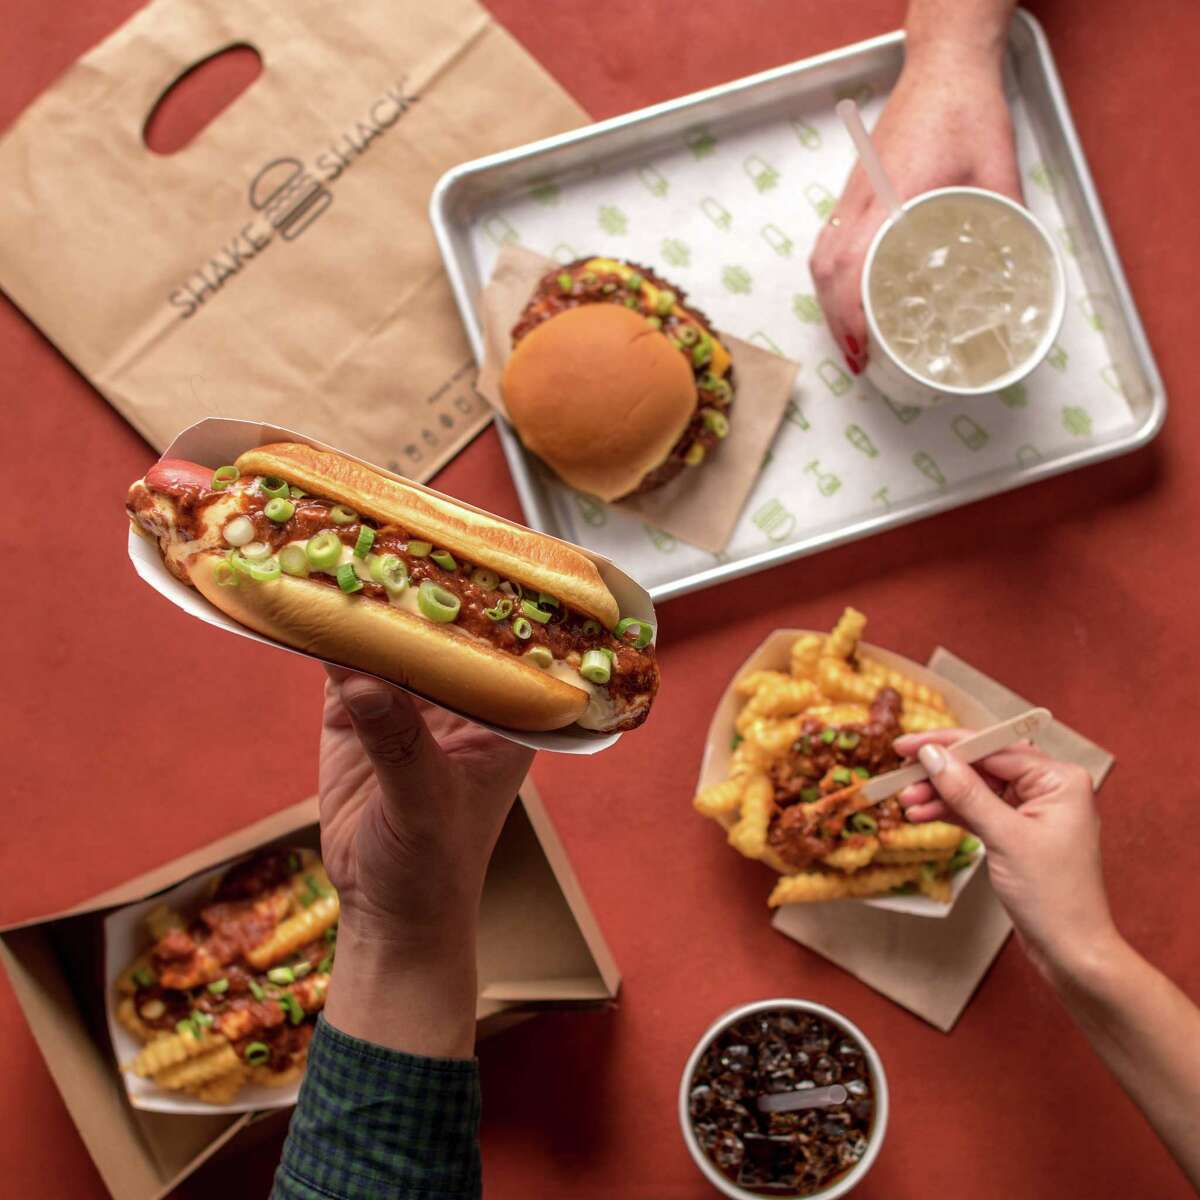 If the Astros win the World Series, Shake Shack will give the first 50 customers at the Houston Galleria restaurant a free chili cheese dog the day after the final game.